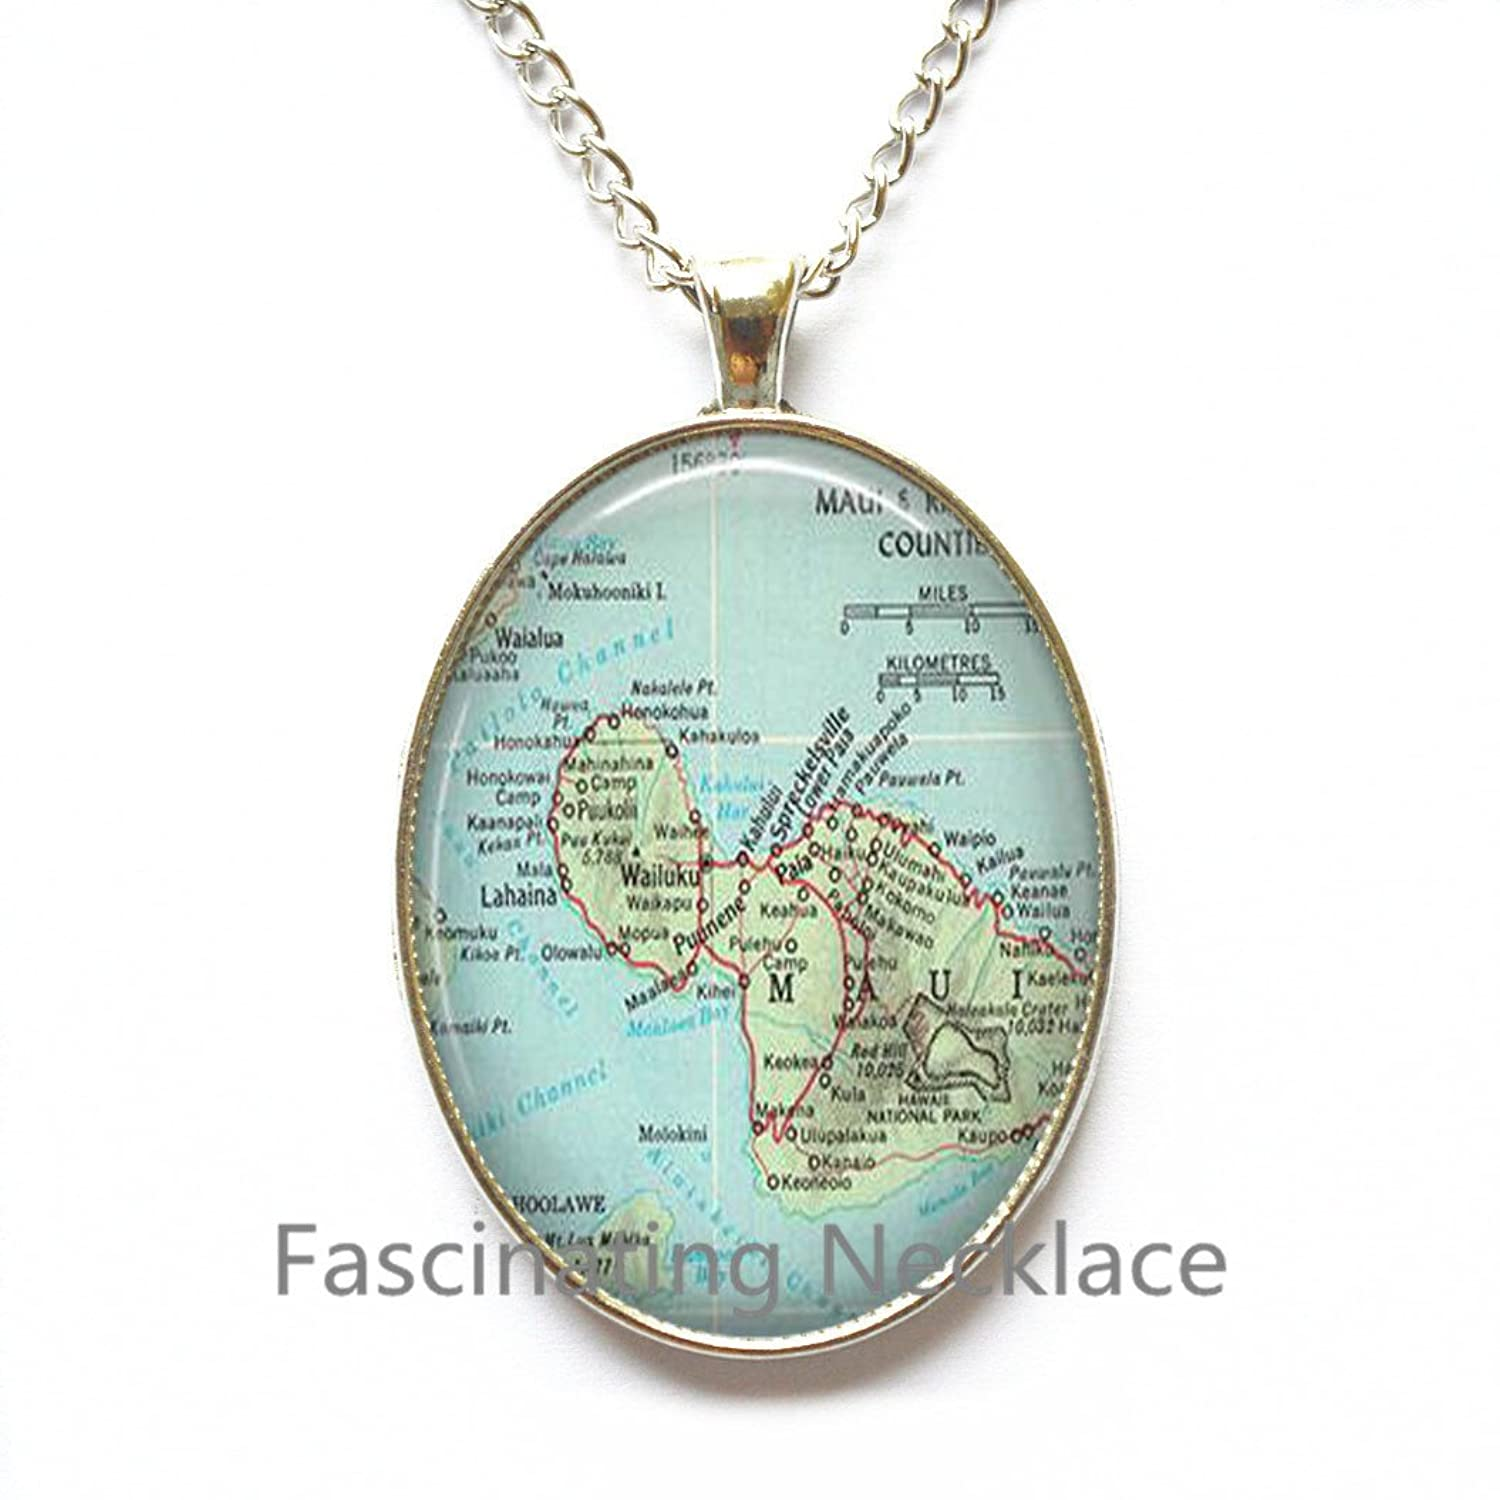 Amazon.com: Charming Necklace, Maui charming map Necklace ... on map party decor, map blouse, map linens, map engraving, map gift wrapping, map of nashville necklace, map drapes, map end tables, map throw blanket, map items, map pouf, map sweatshirt, map vest, map party favors, map pendant necklaces, map name tags, map art, map wall artwork, map necklace diy, map gift tags,